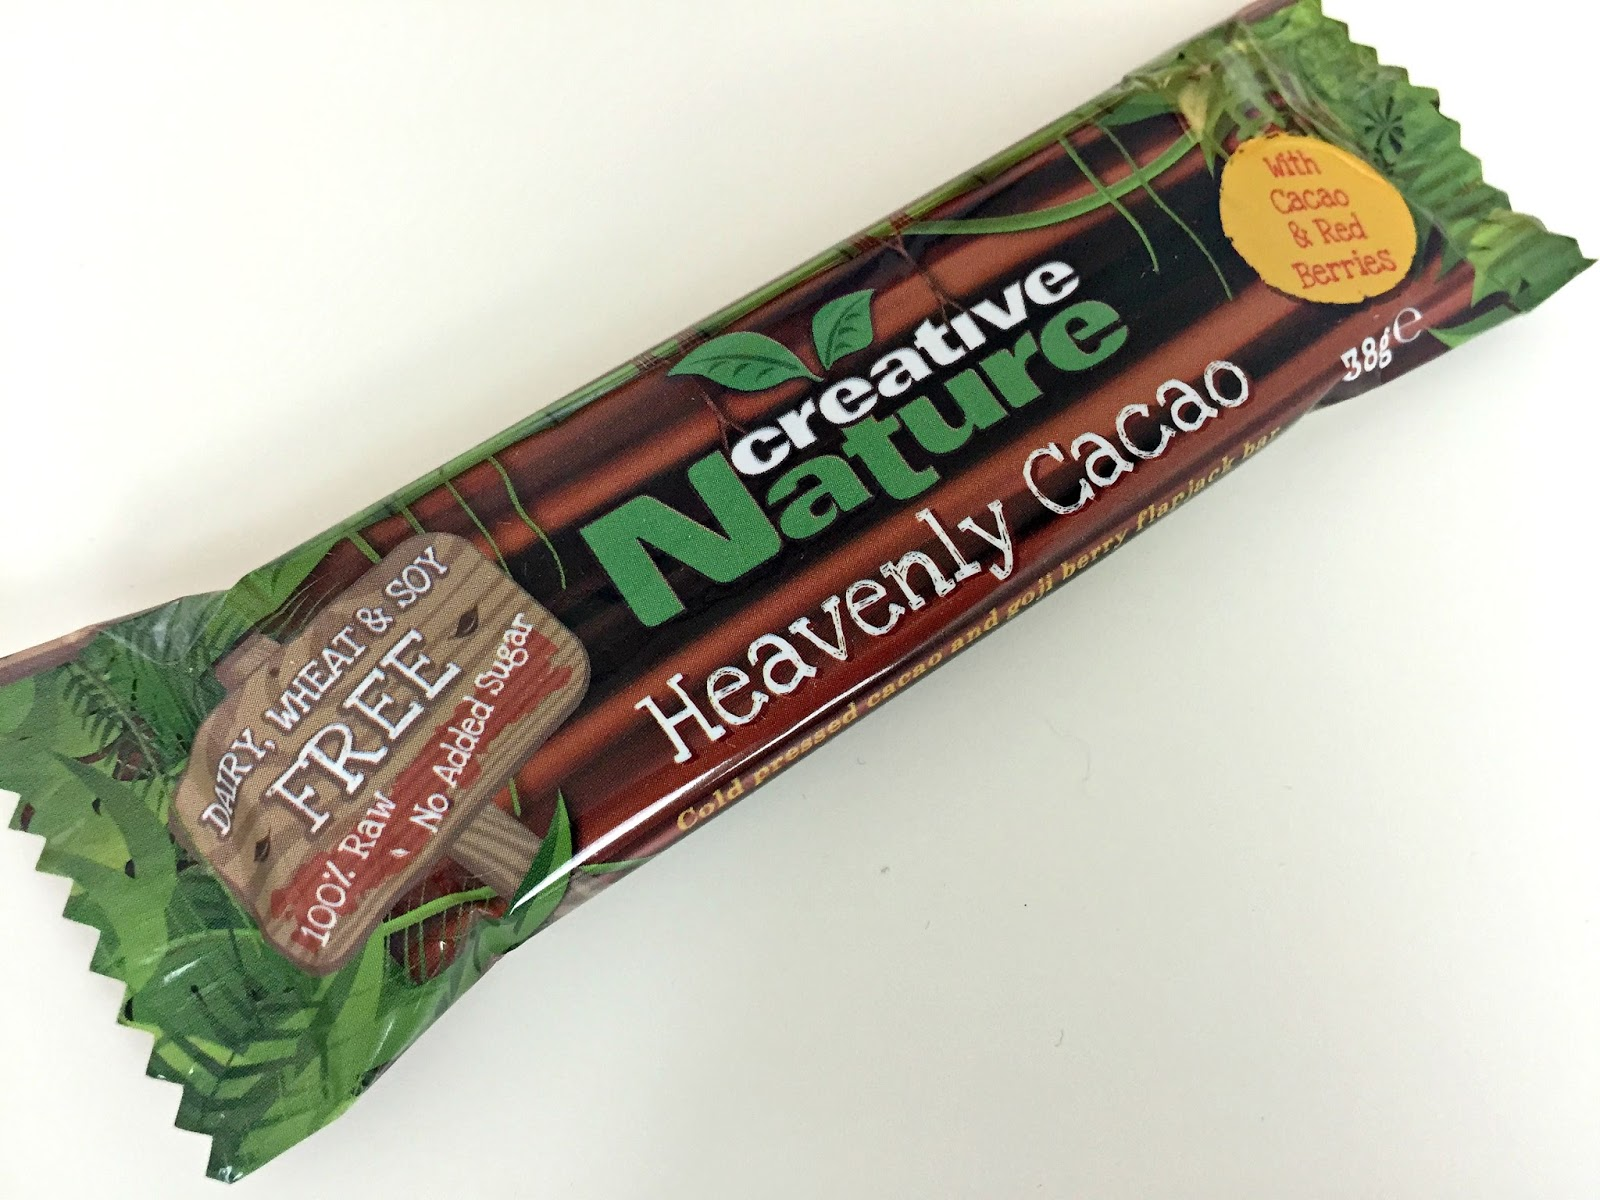 Creative Nature Heavenly Cacao